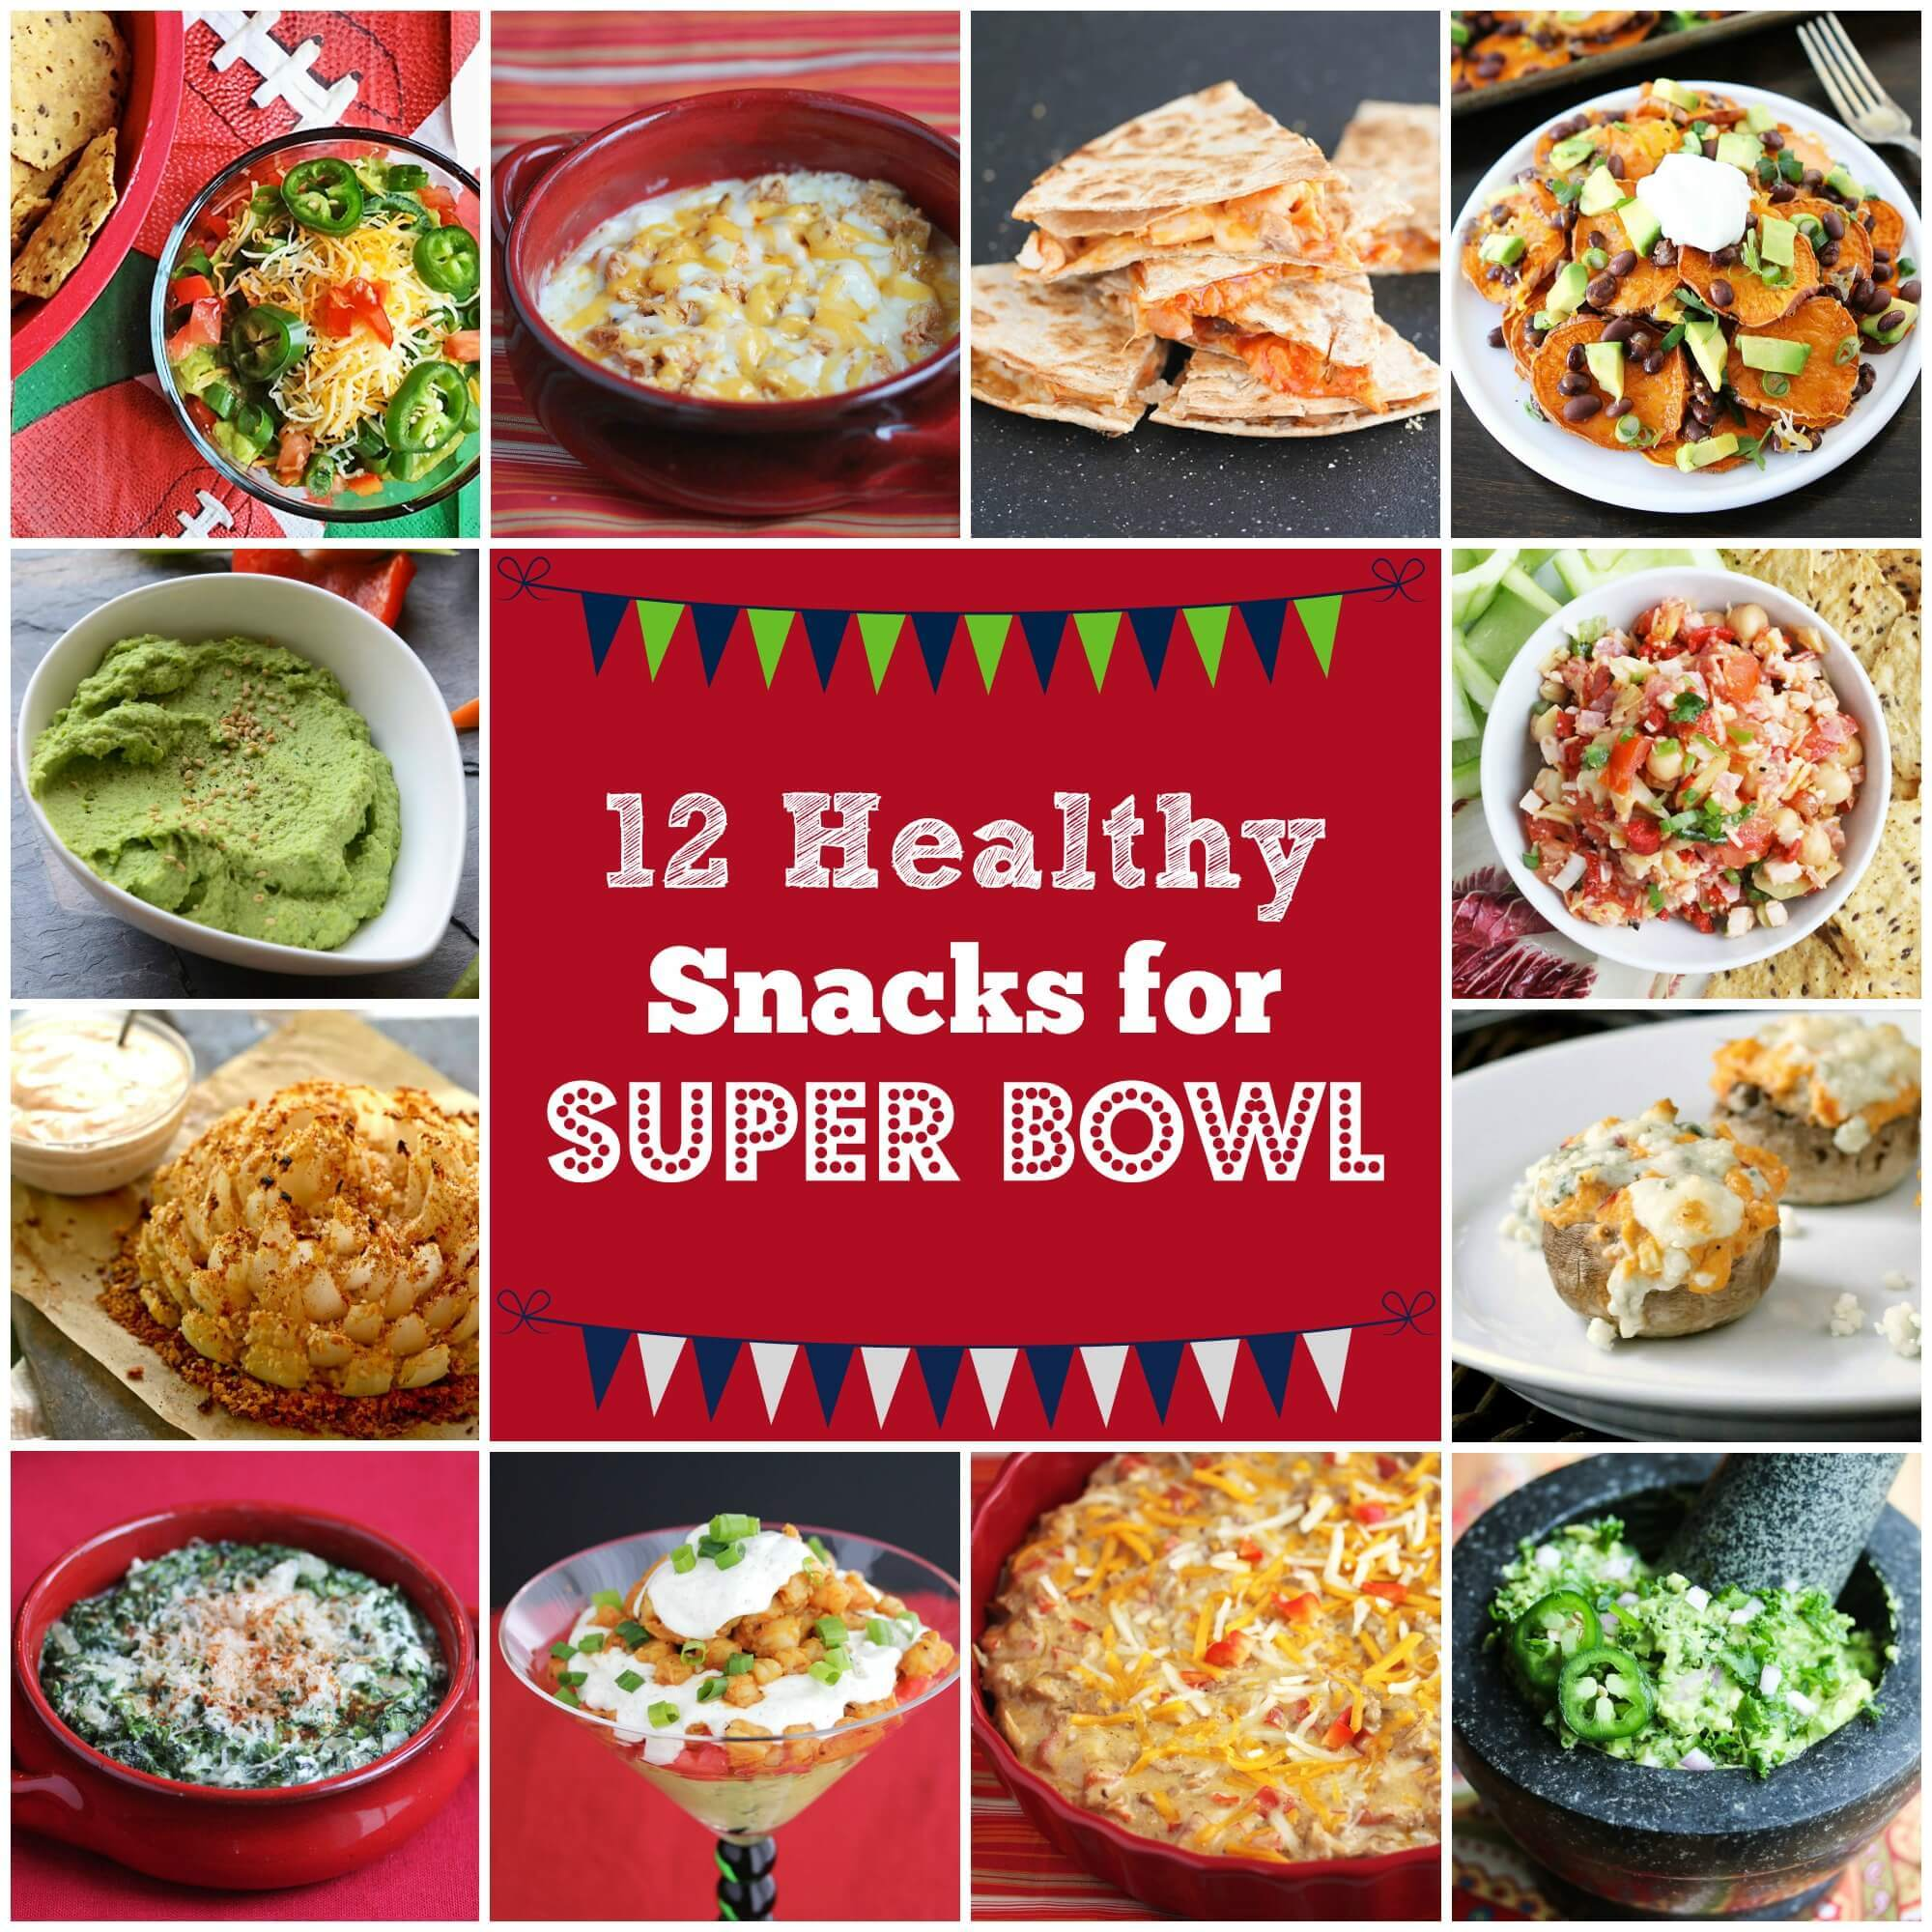 12 Healthy Super Bowl Snack Recipes